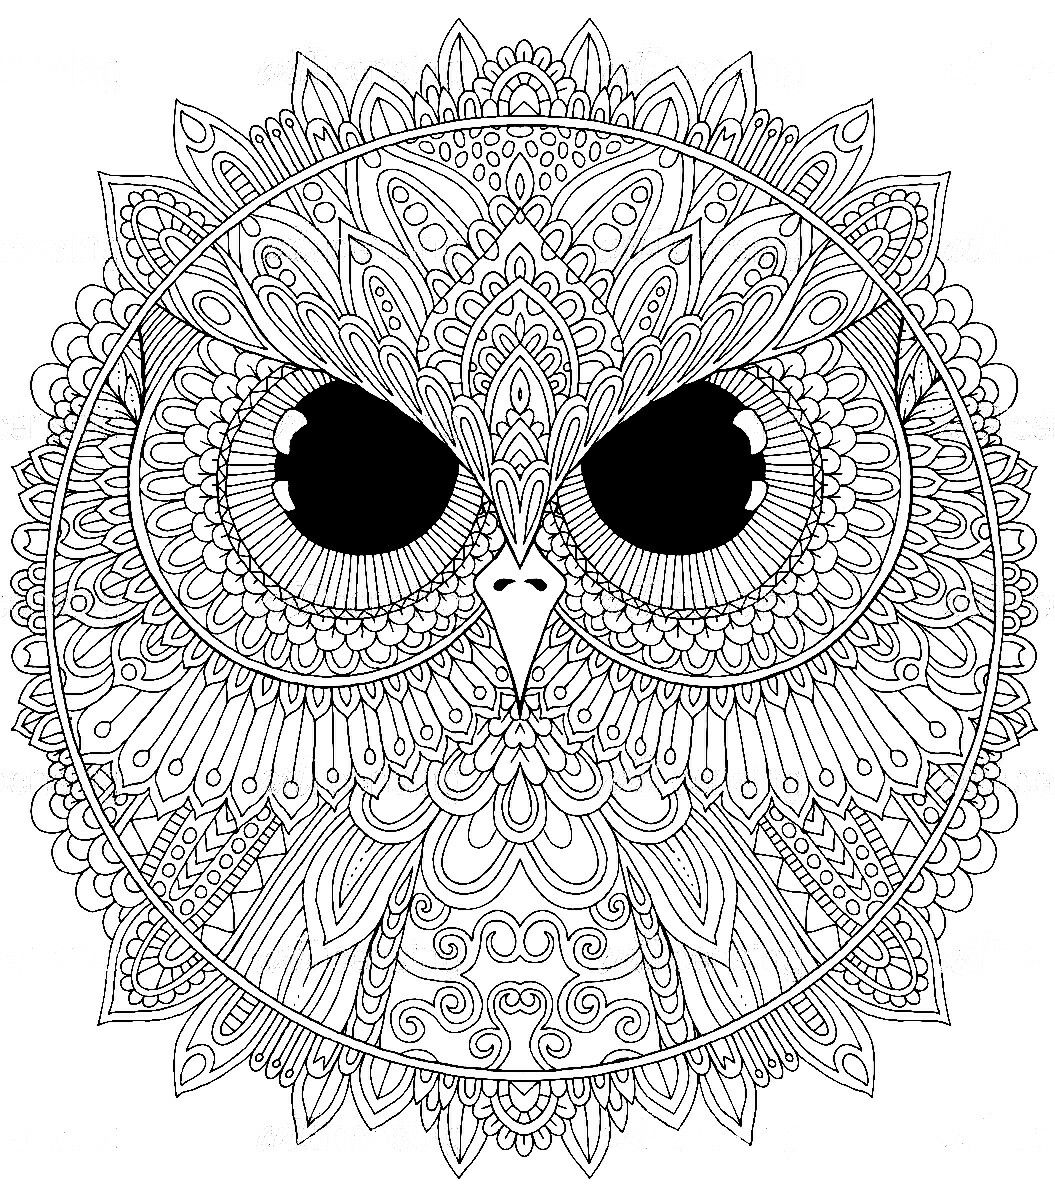 Pin by Elisabeth Quisenberry on Coloring Therapy: Birds ...